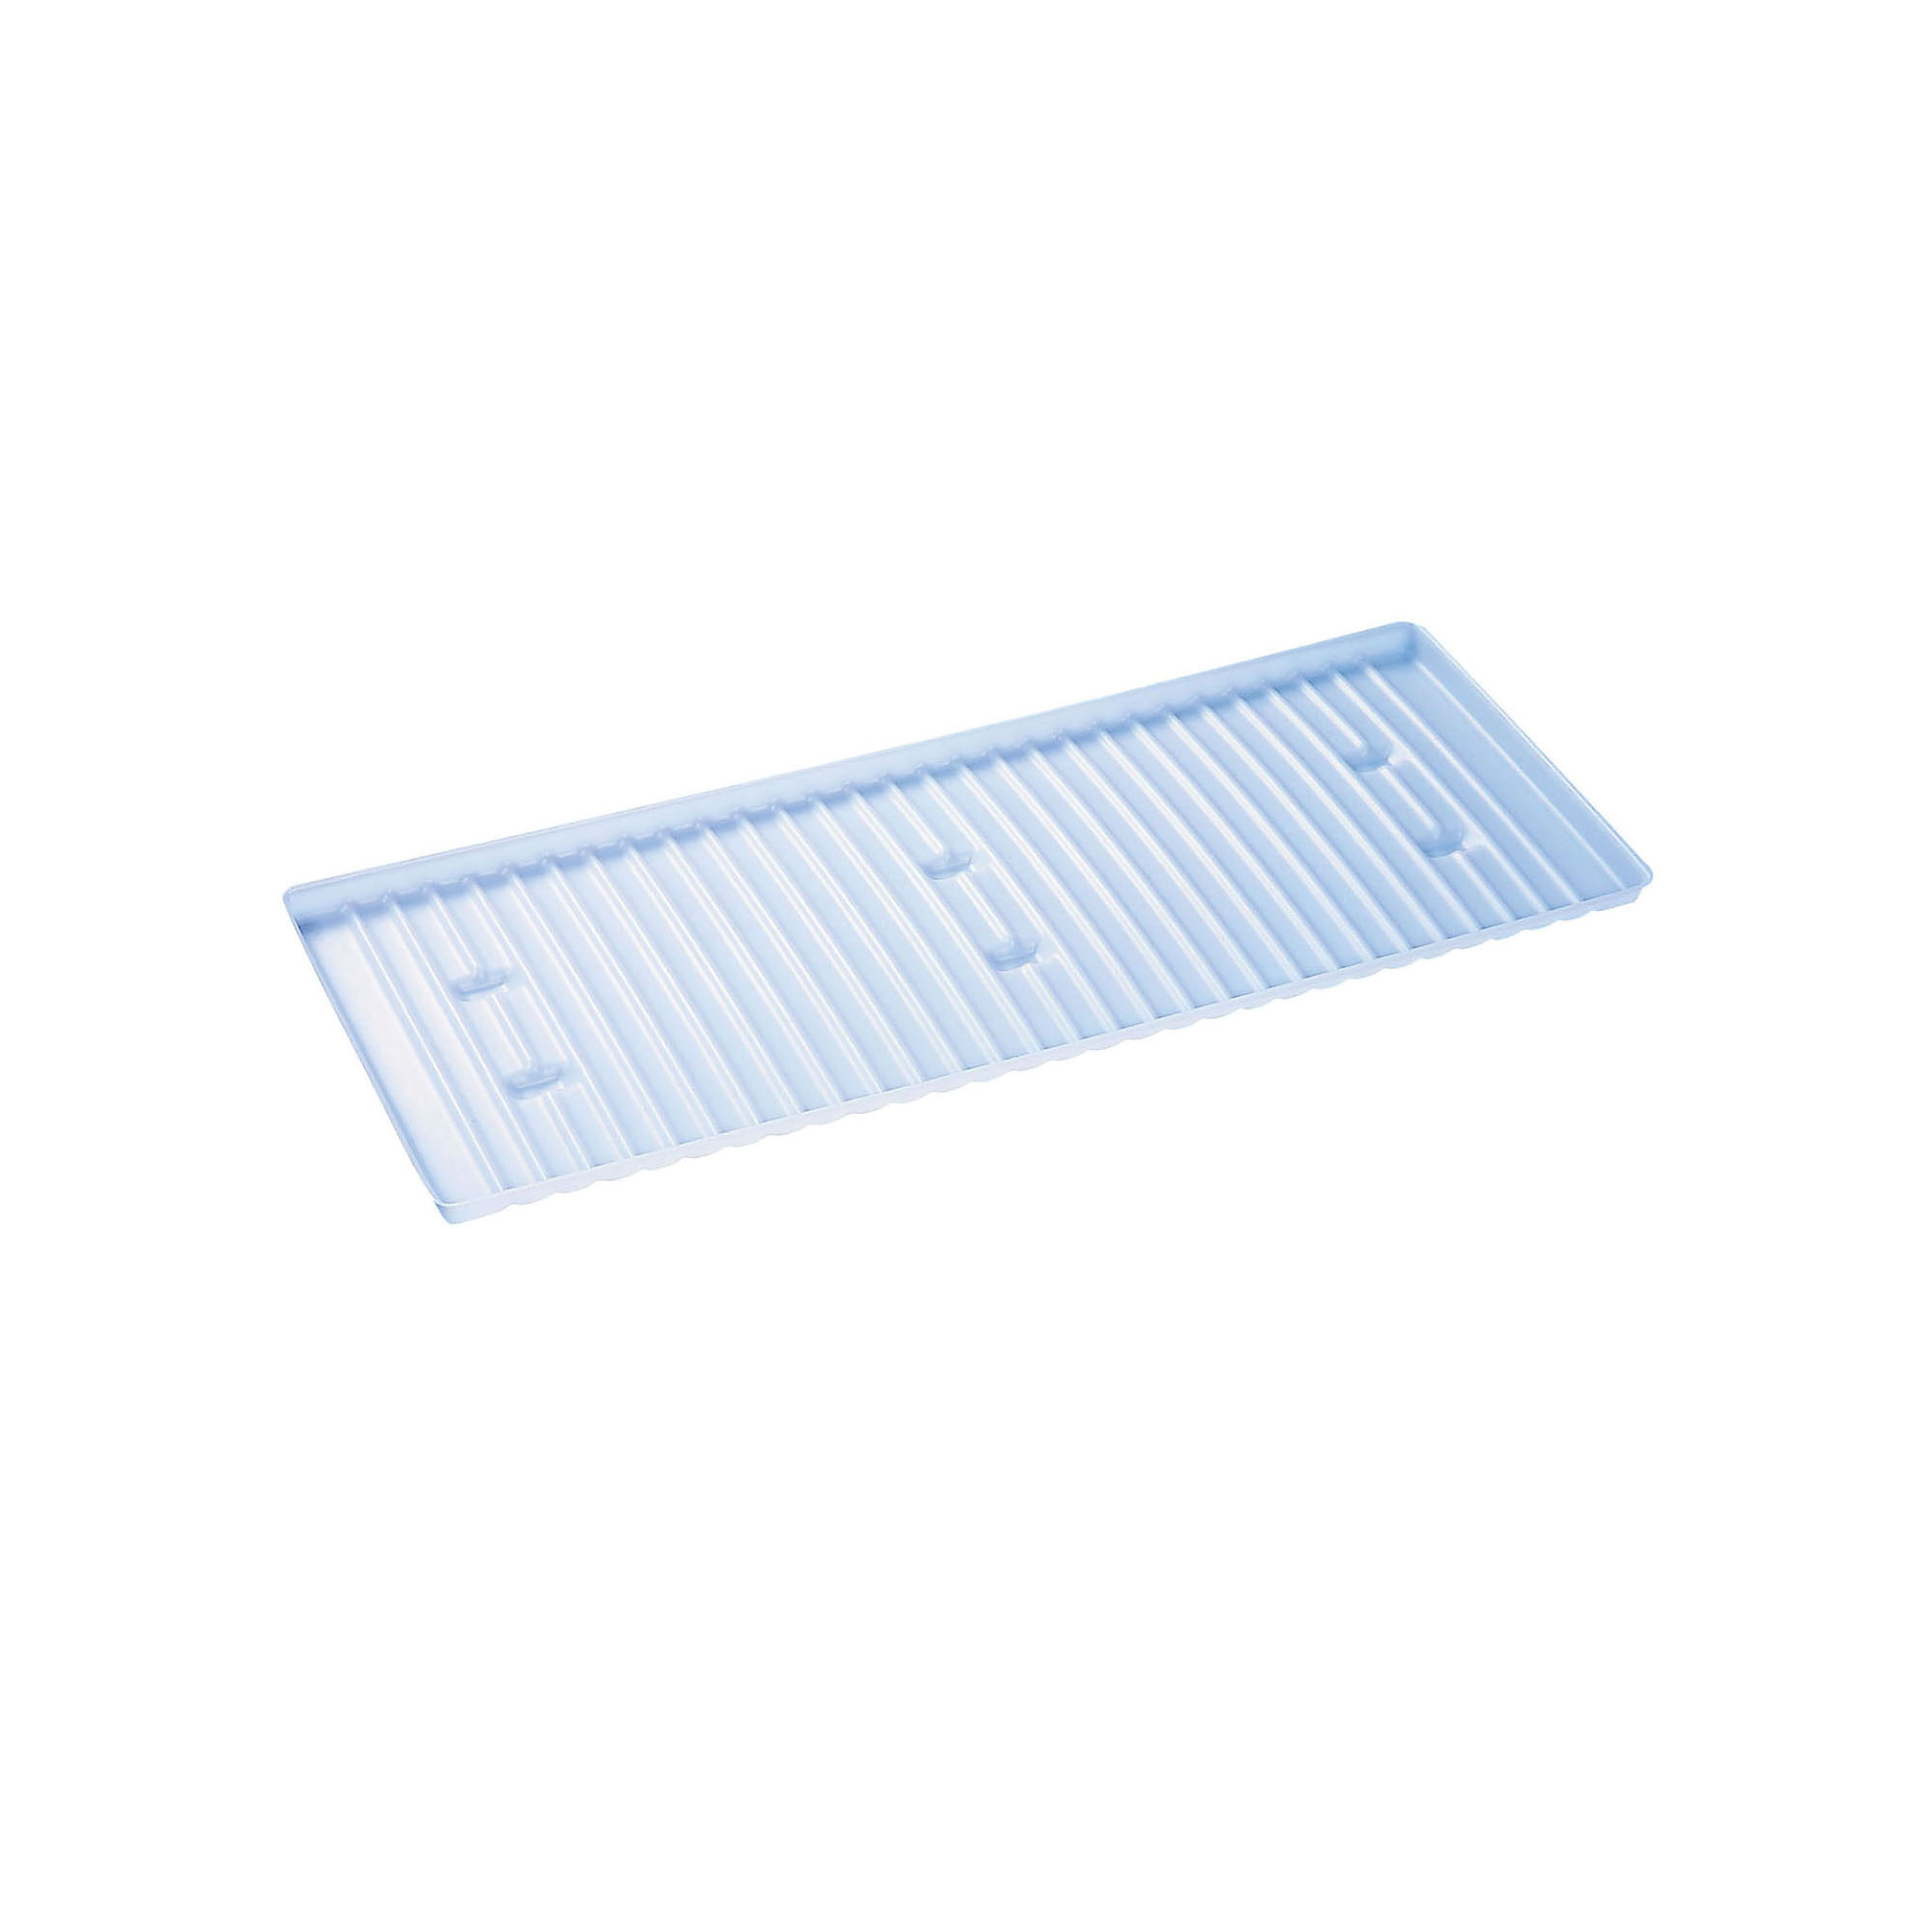 Justrite® SpillSlope® 29962 Combination Tray/Sump, For Use With 29937 Shelf, 45 gal 2-Door Cabinets and 17 gal Piggyback Safety Cabinet, White